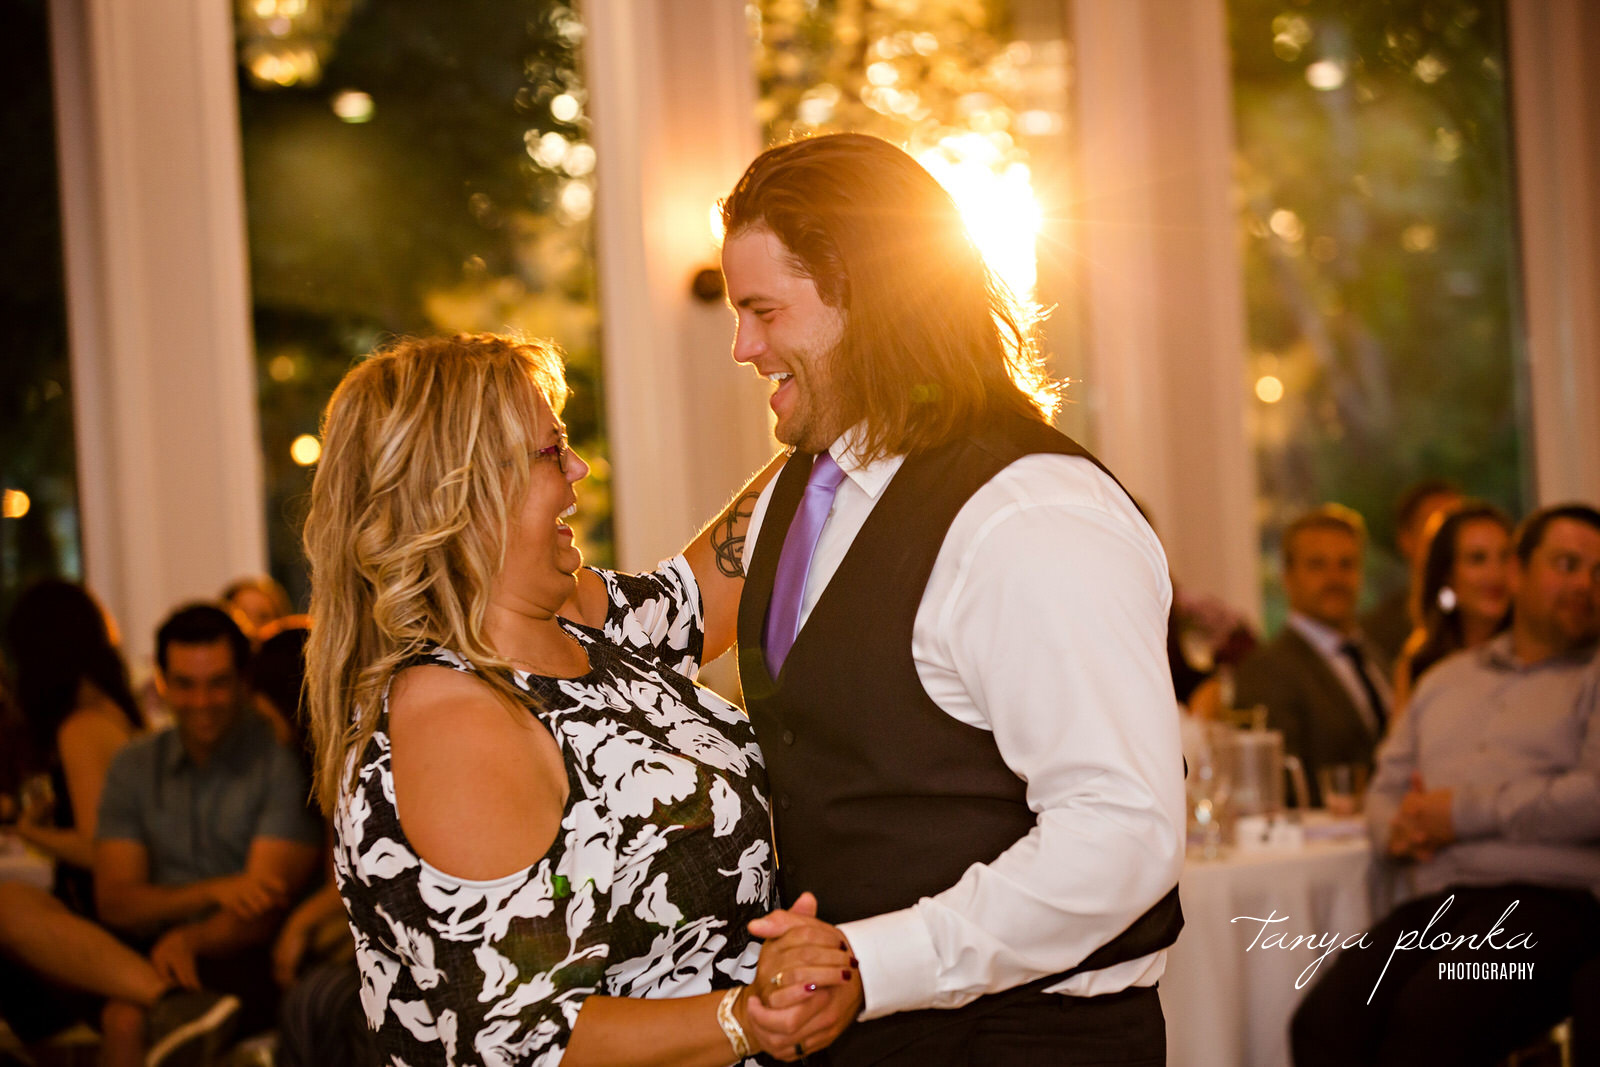 mother and son laugh while dancing together with sunlight behind them